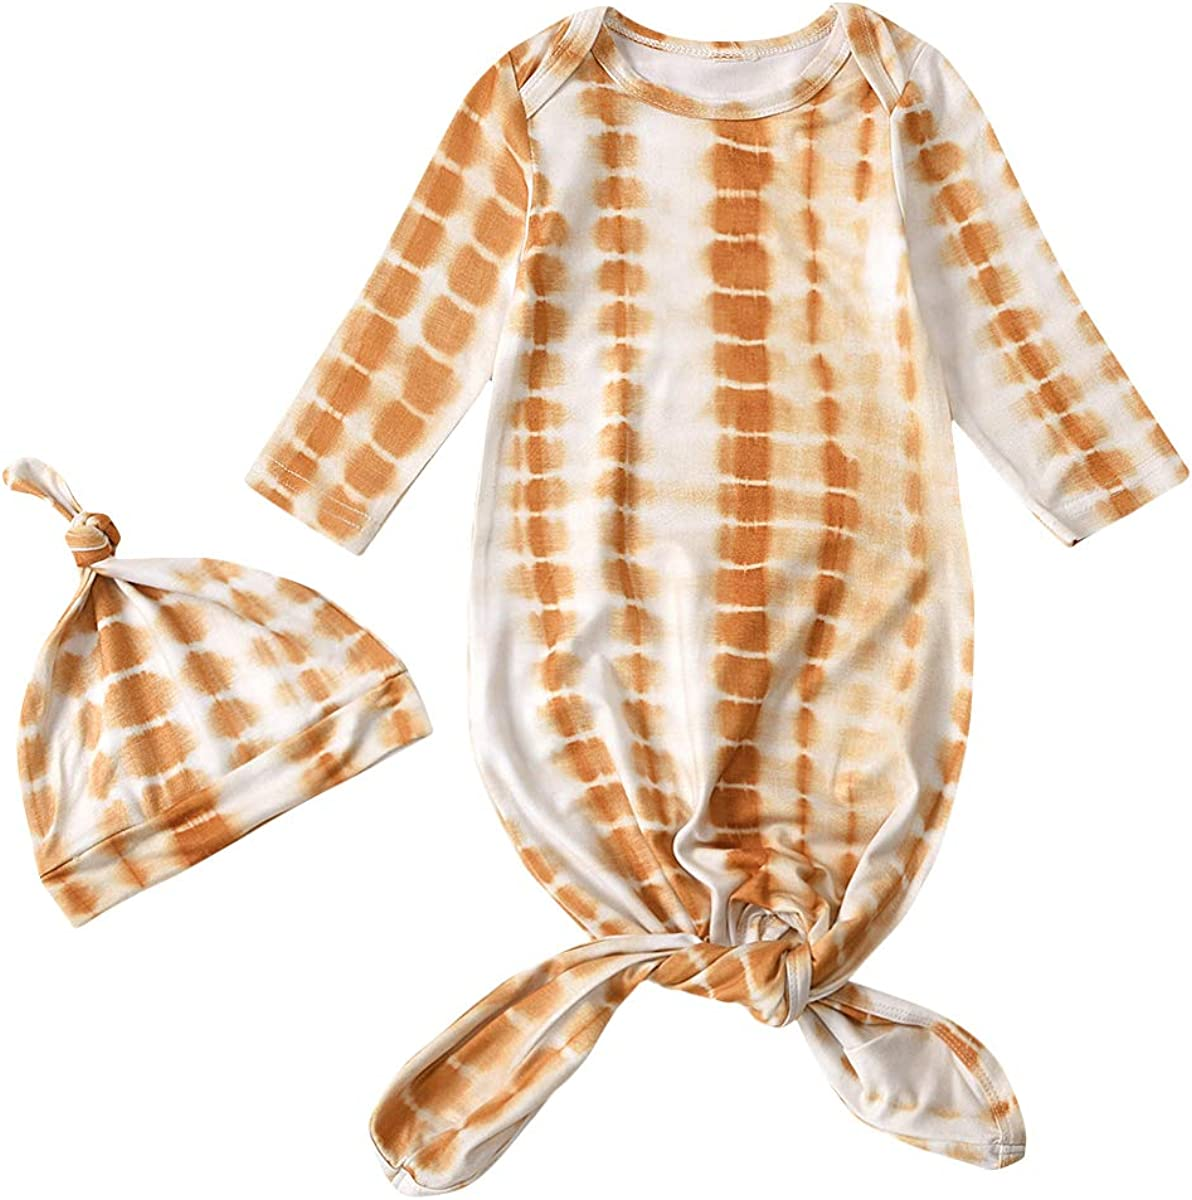 Newborn Baby Girls Boys Nightgowns Long Sleeve Sleeping Bags Pajamas With Hat Going Home Outfit Set